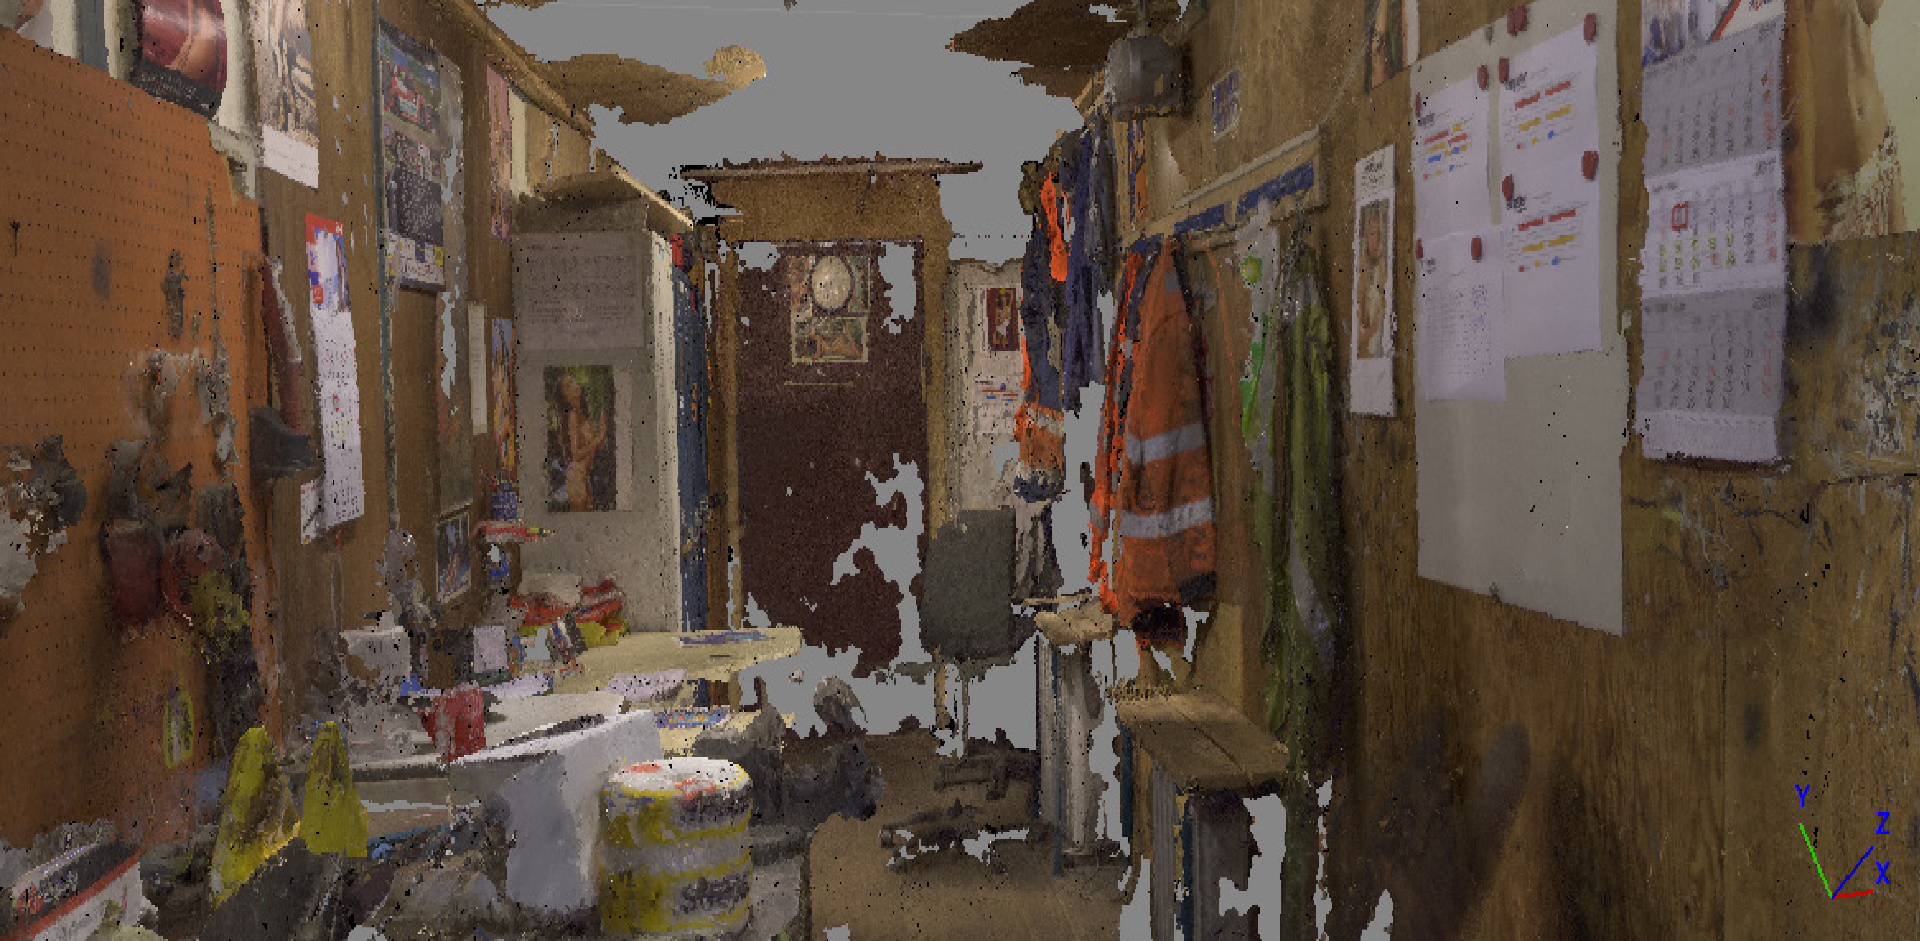 On my search for a interesting place to portray for VR i came across a crane operator office, that was placed inside a container. I decided to make a photogrametry model with permission of the workers. However the photogrametry was not to my liking so i decided to make my own interpretation of the room.